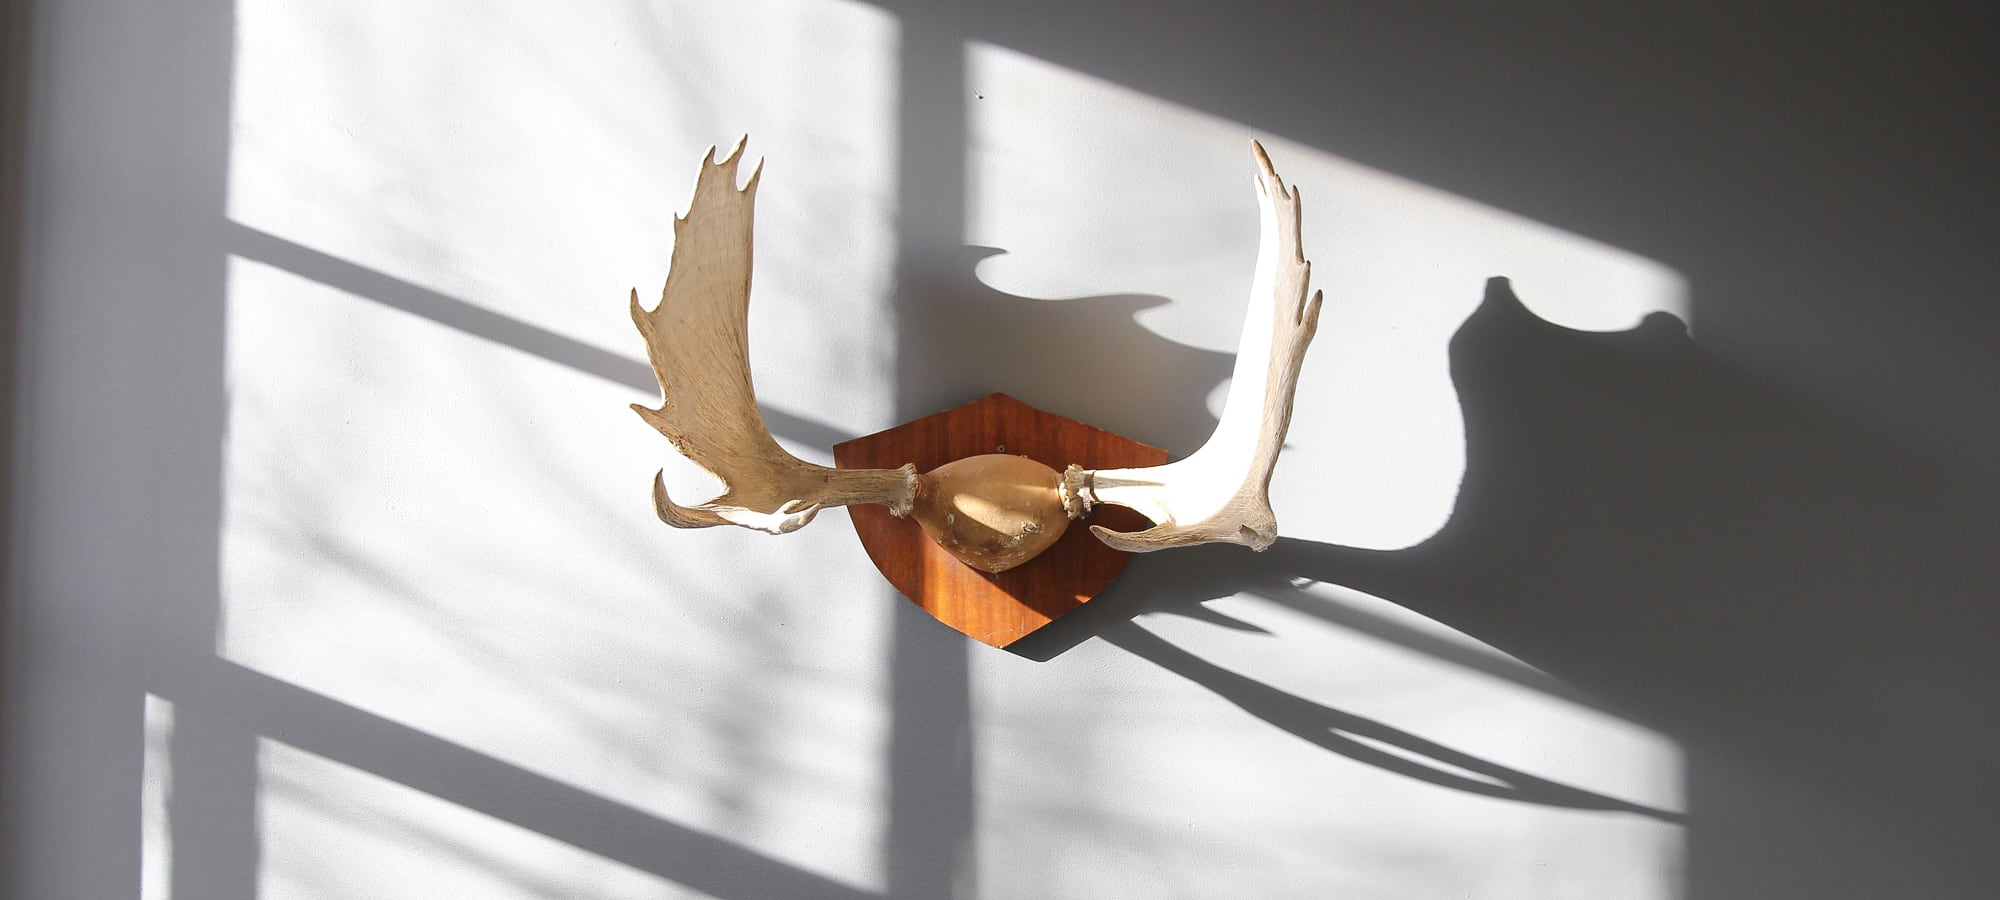 Antlers mounted on wooden plaque with sun shining onto white wall at Ritual House Creative office in Capitol Hill, Seattle, Wa.